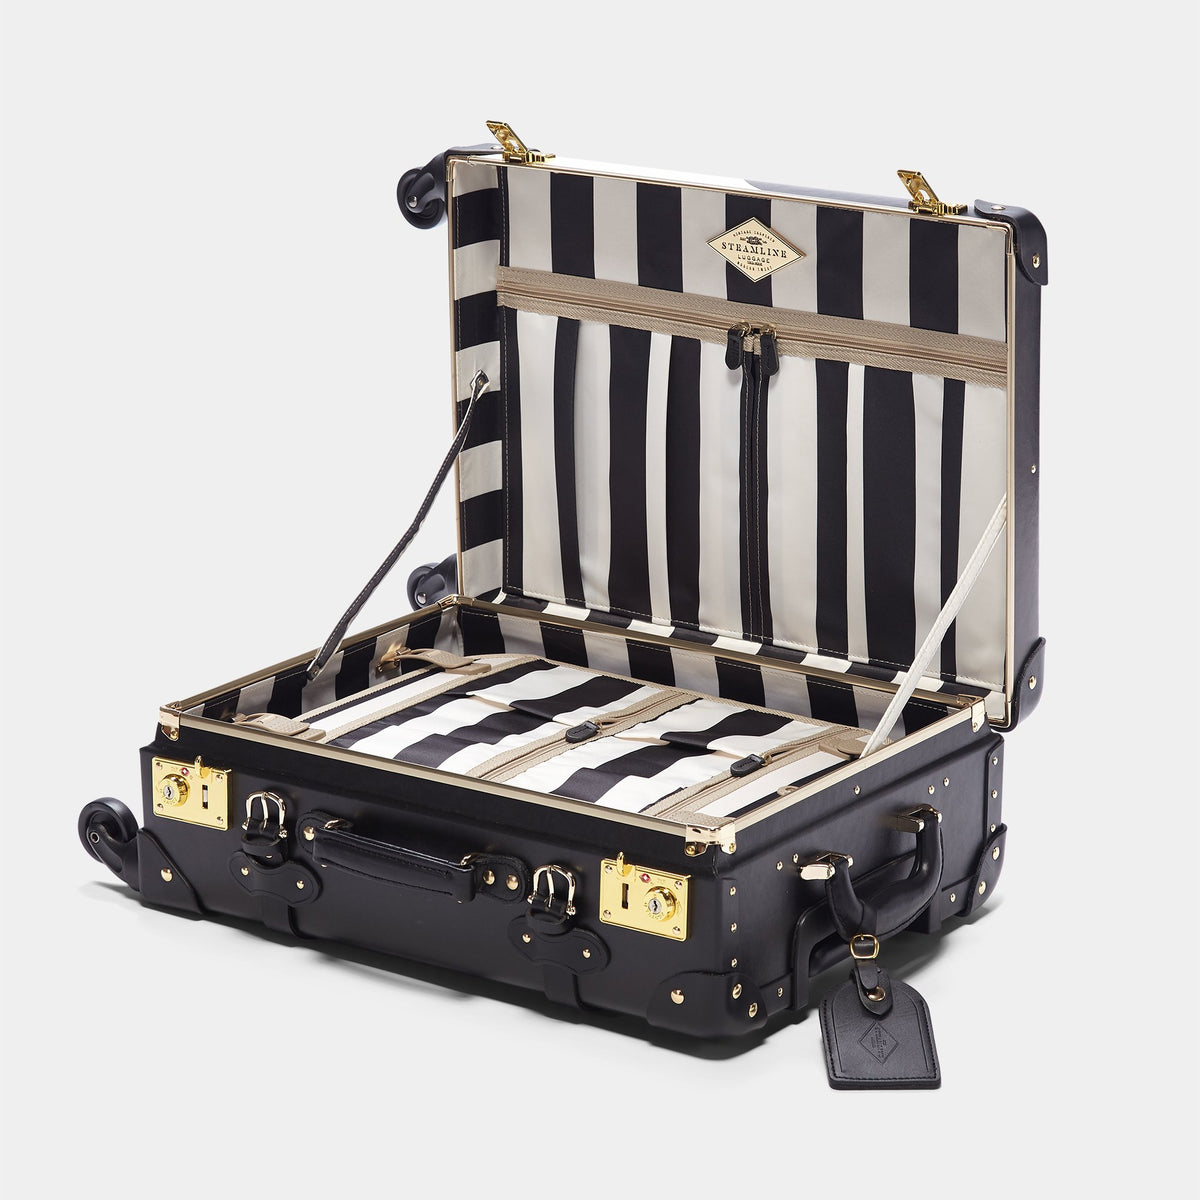 The alice + olivia X SteamLine - Carryon